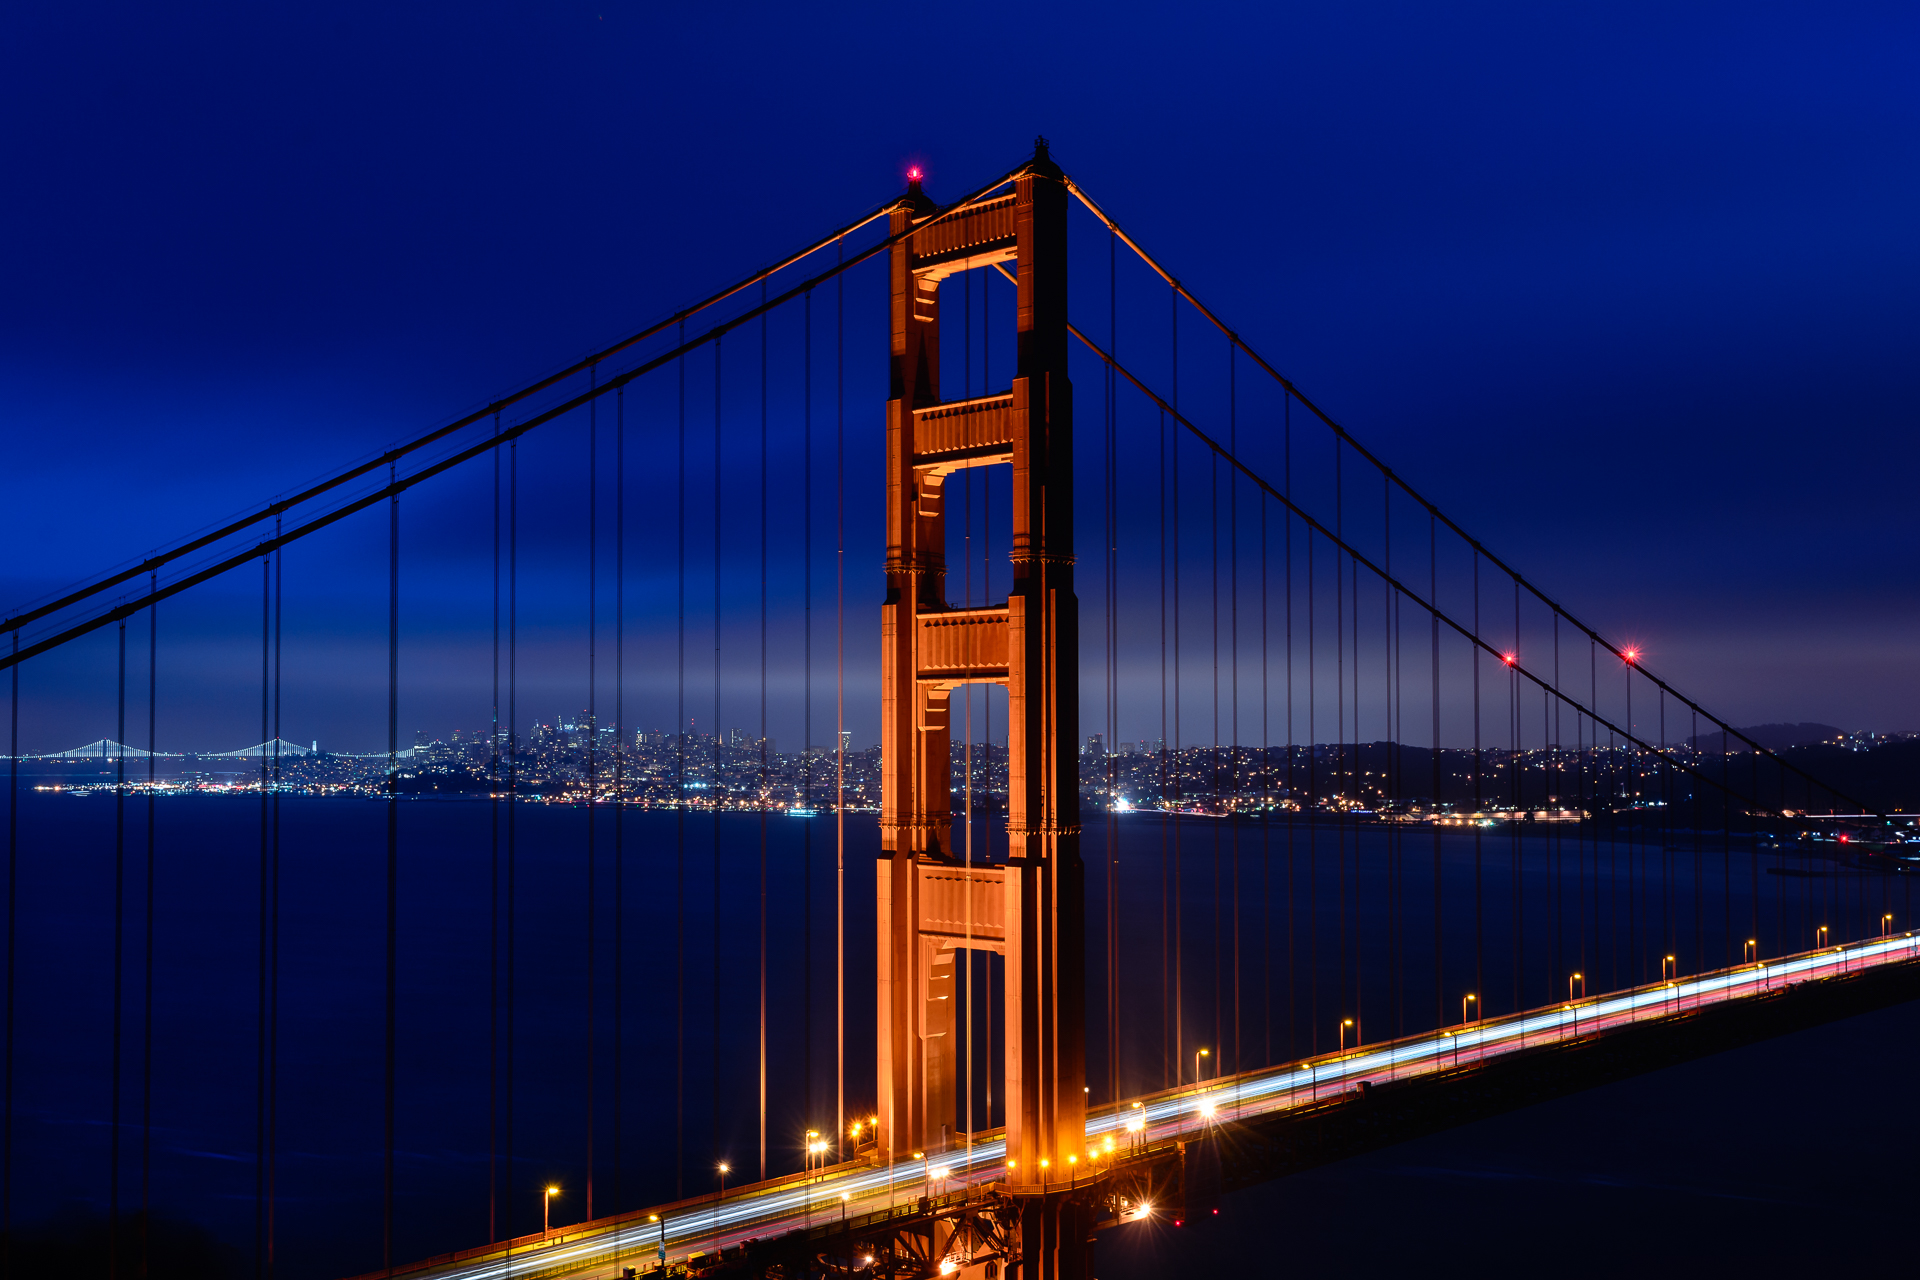 Over the Golden Gate...